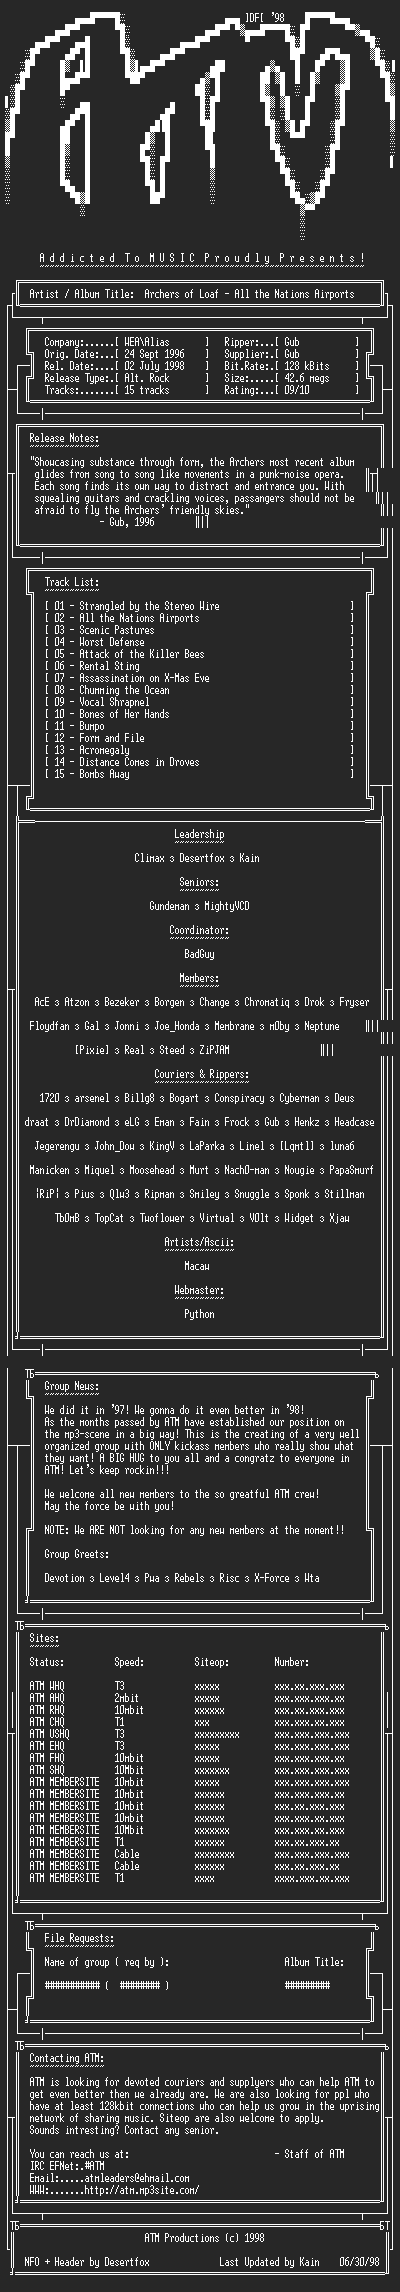 NFO file for Archers_of_Loaf_-_All_the_Nations_Airports_(1996)_-_ATM